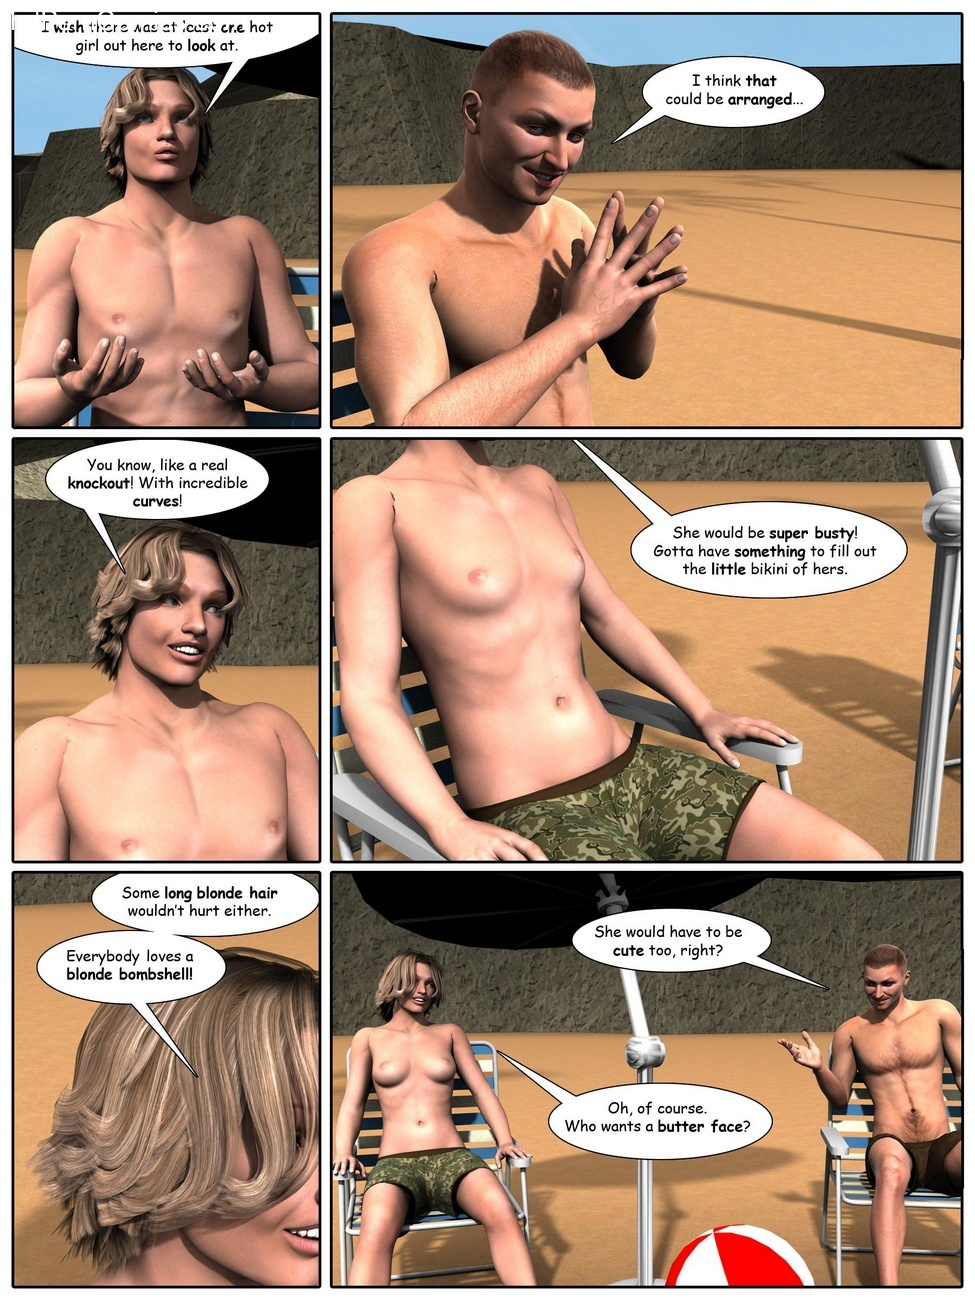 A Day At The Beach 4 free sex comic